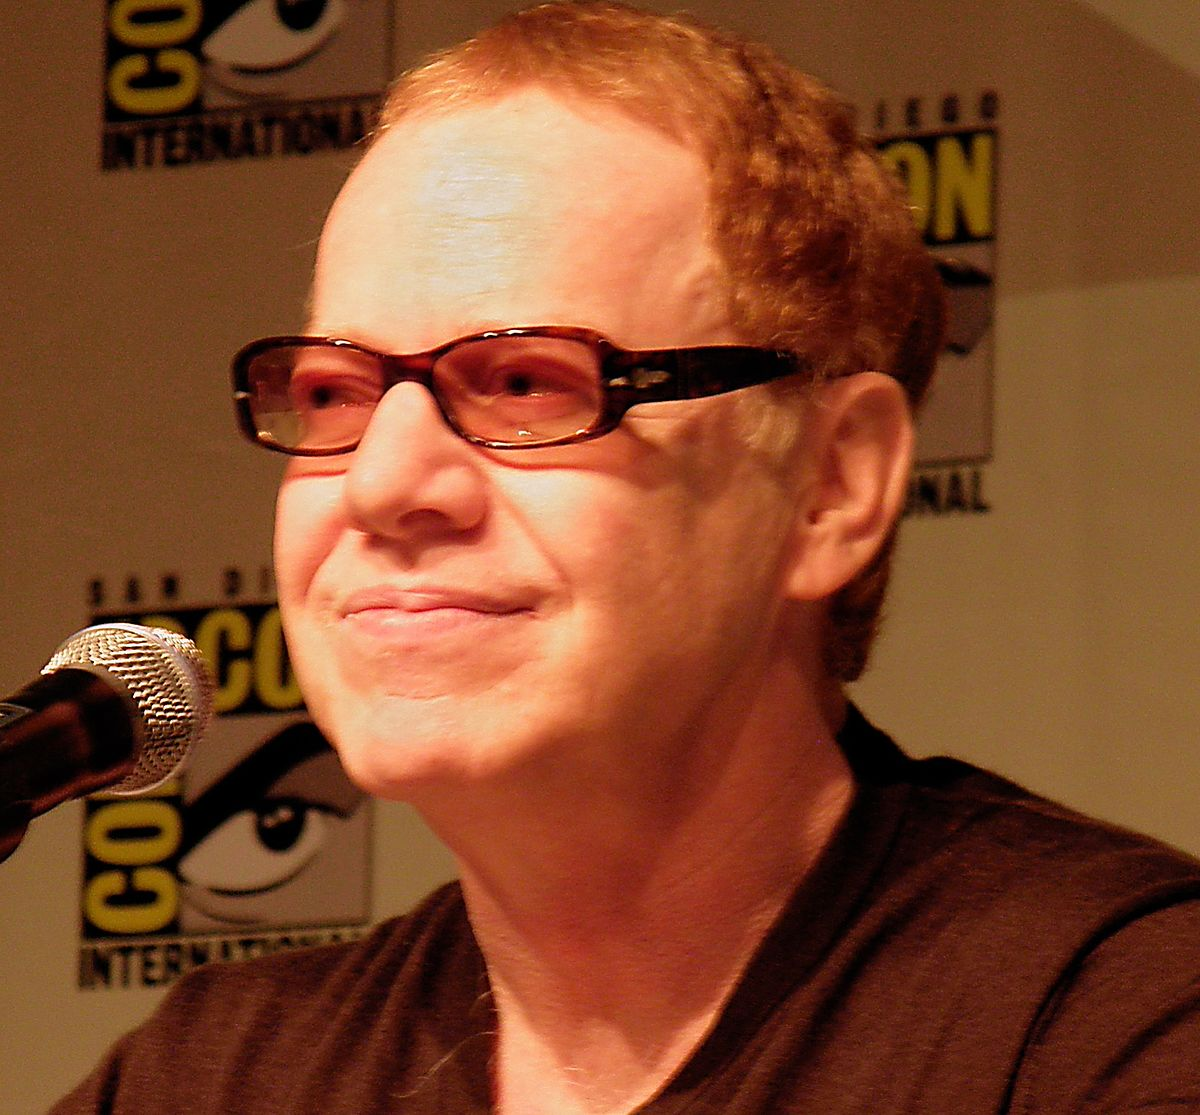 danny elfman wikipedia - Voice Of Jack Nightmare Before Christmas